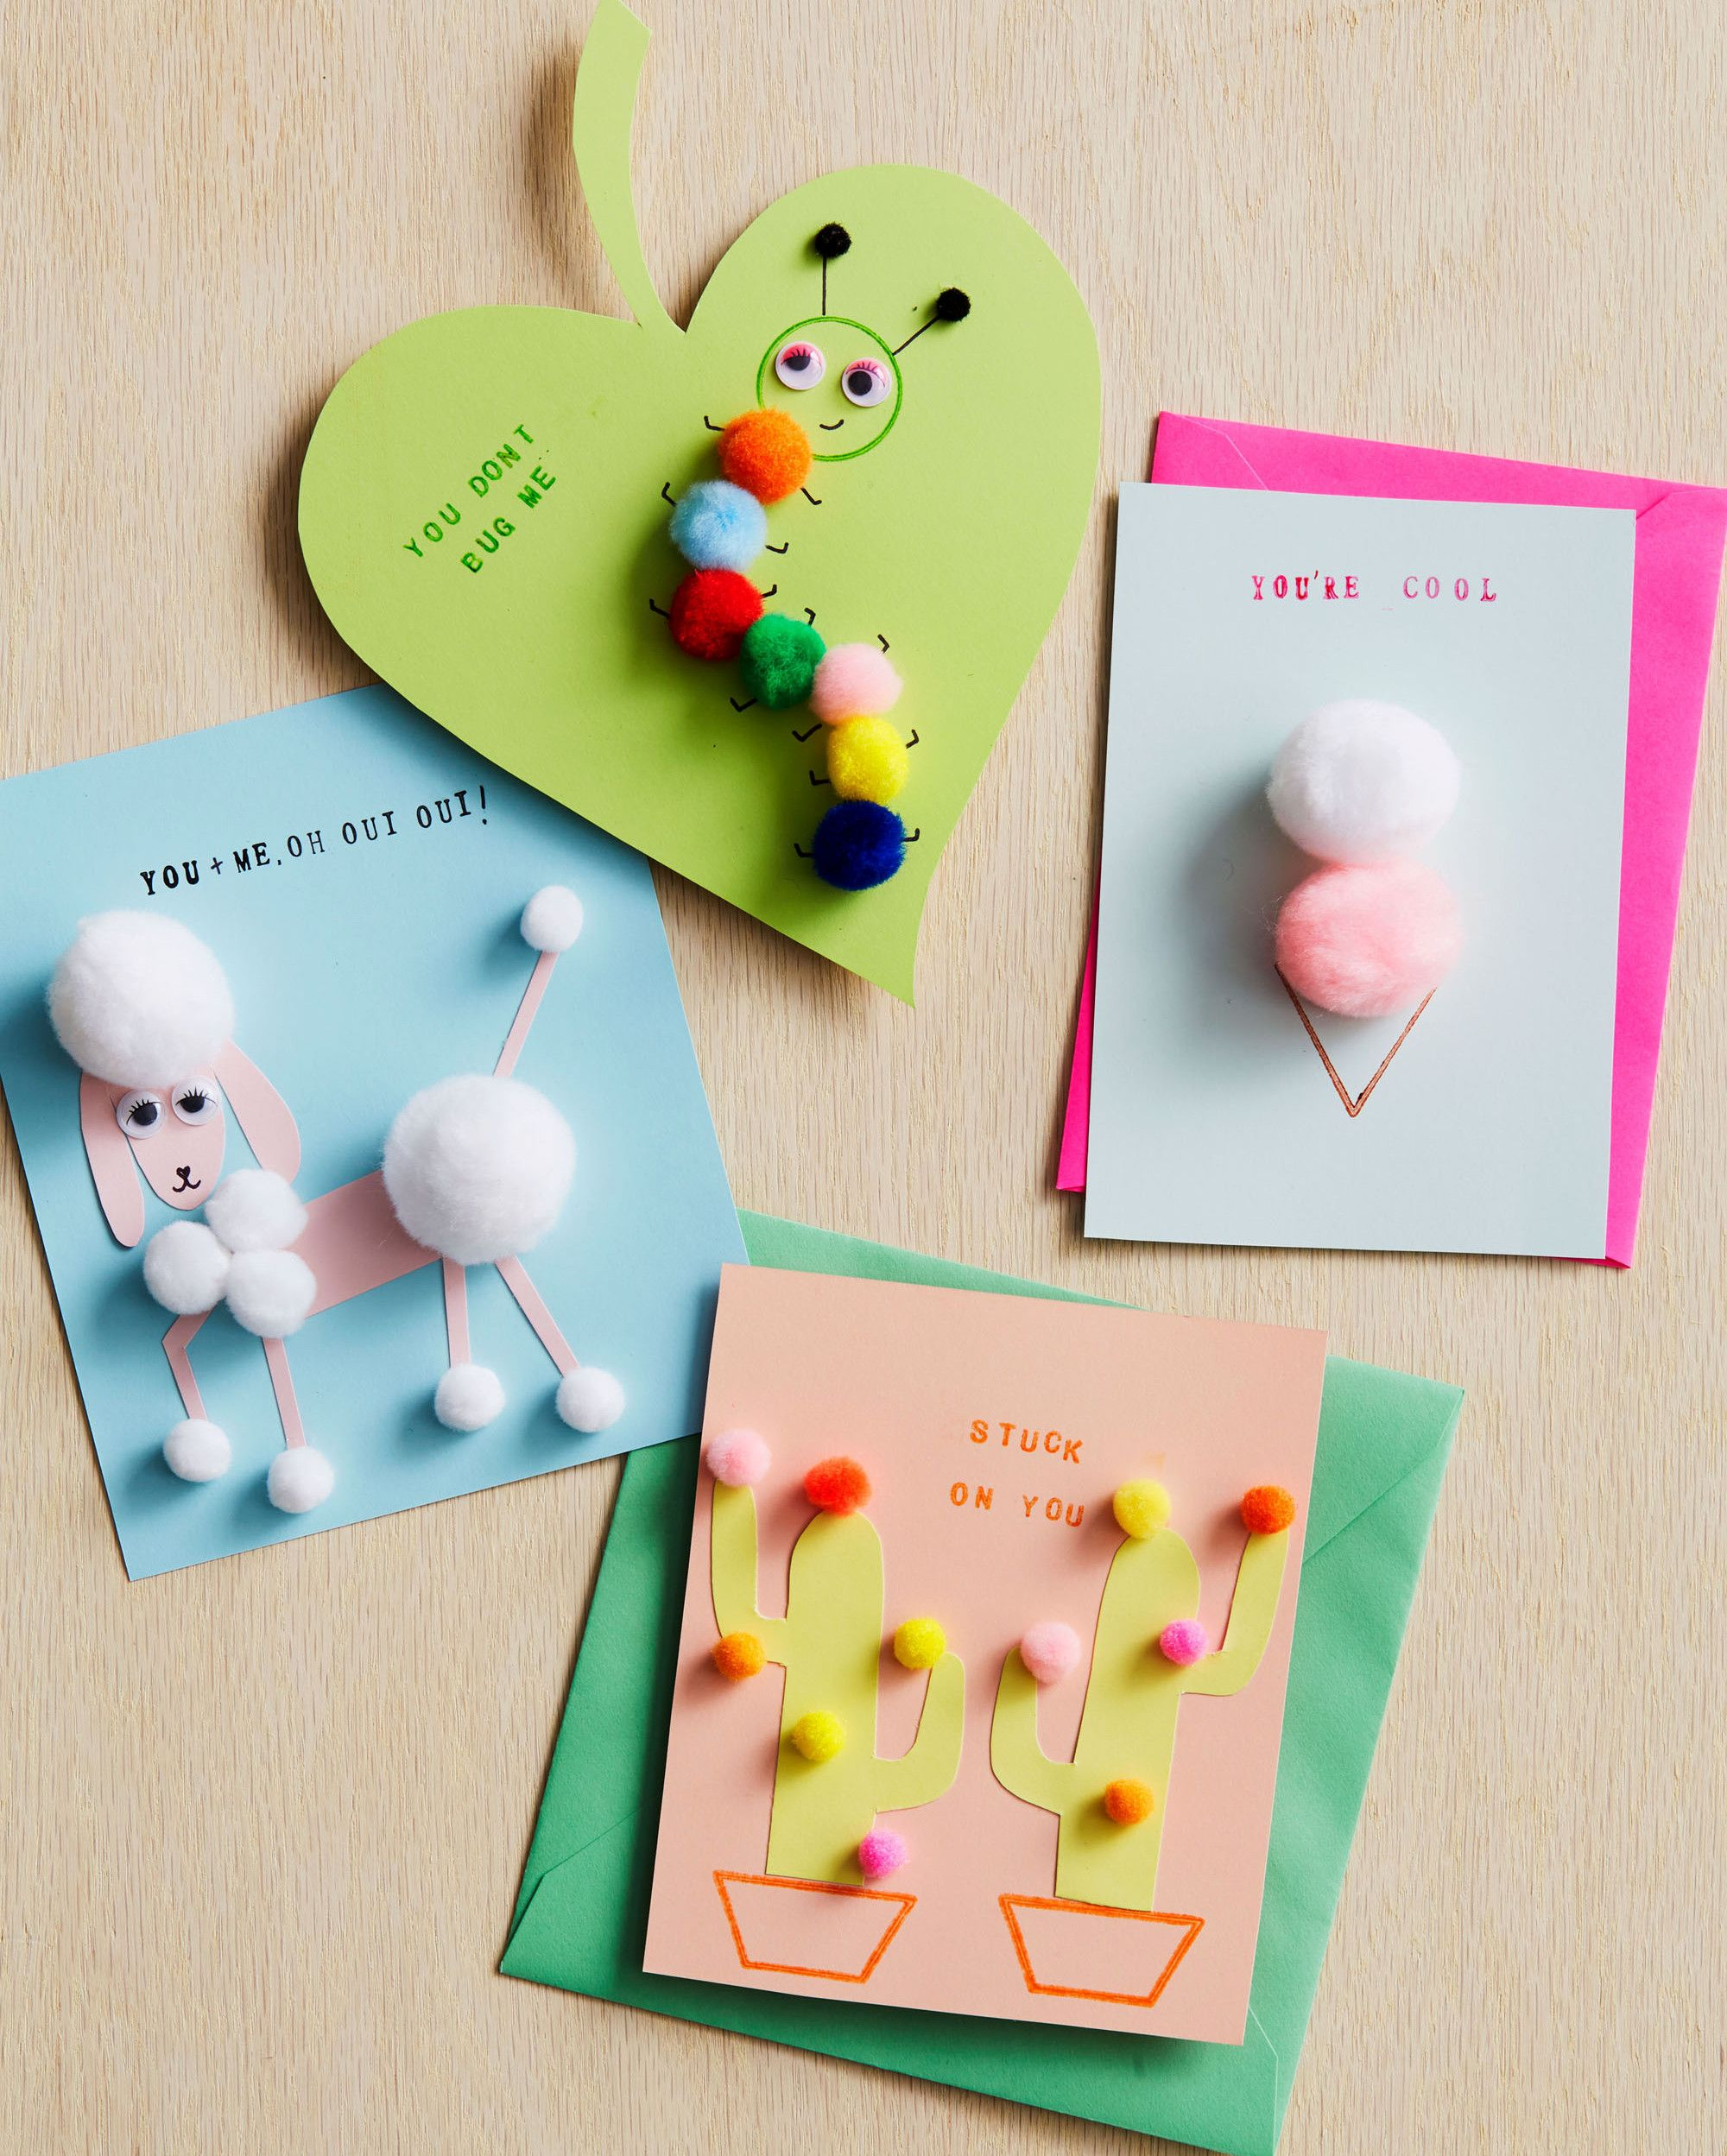 Valentine's Day Crafts That Are Fun and Easy for Kids to Make